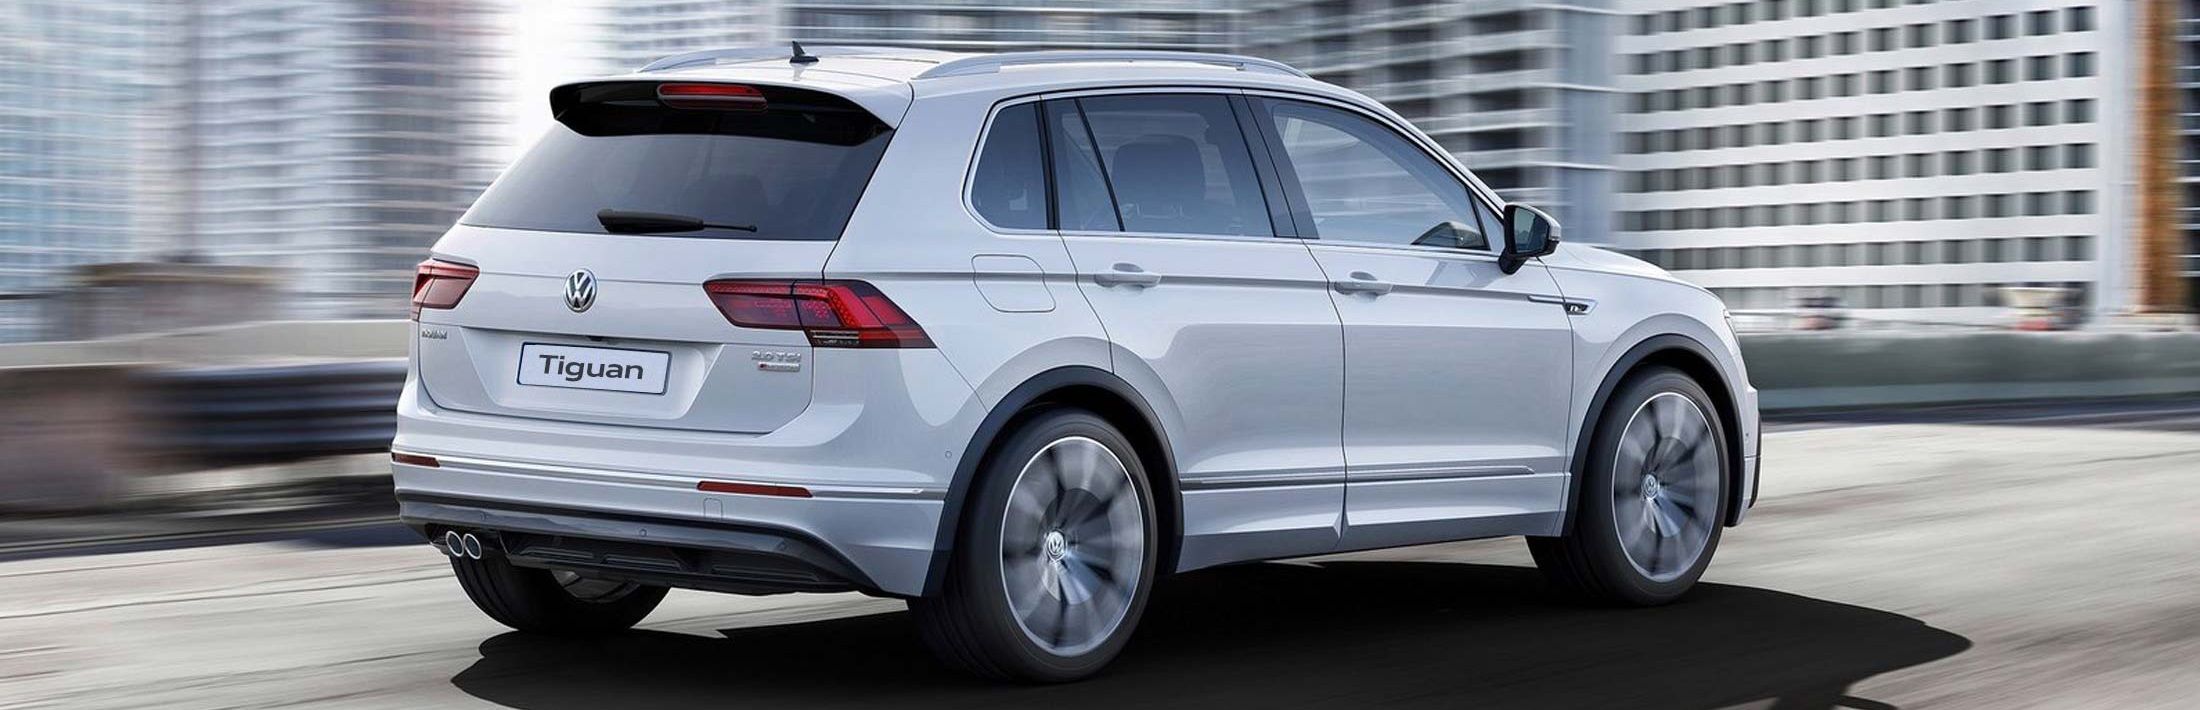 Tiguan Offer Slider 1